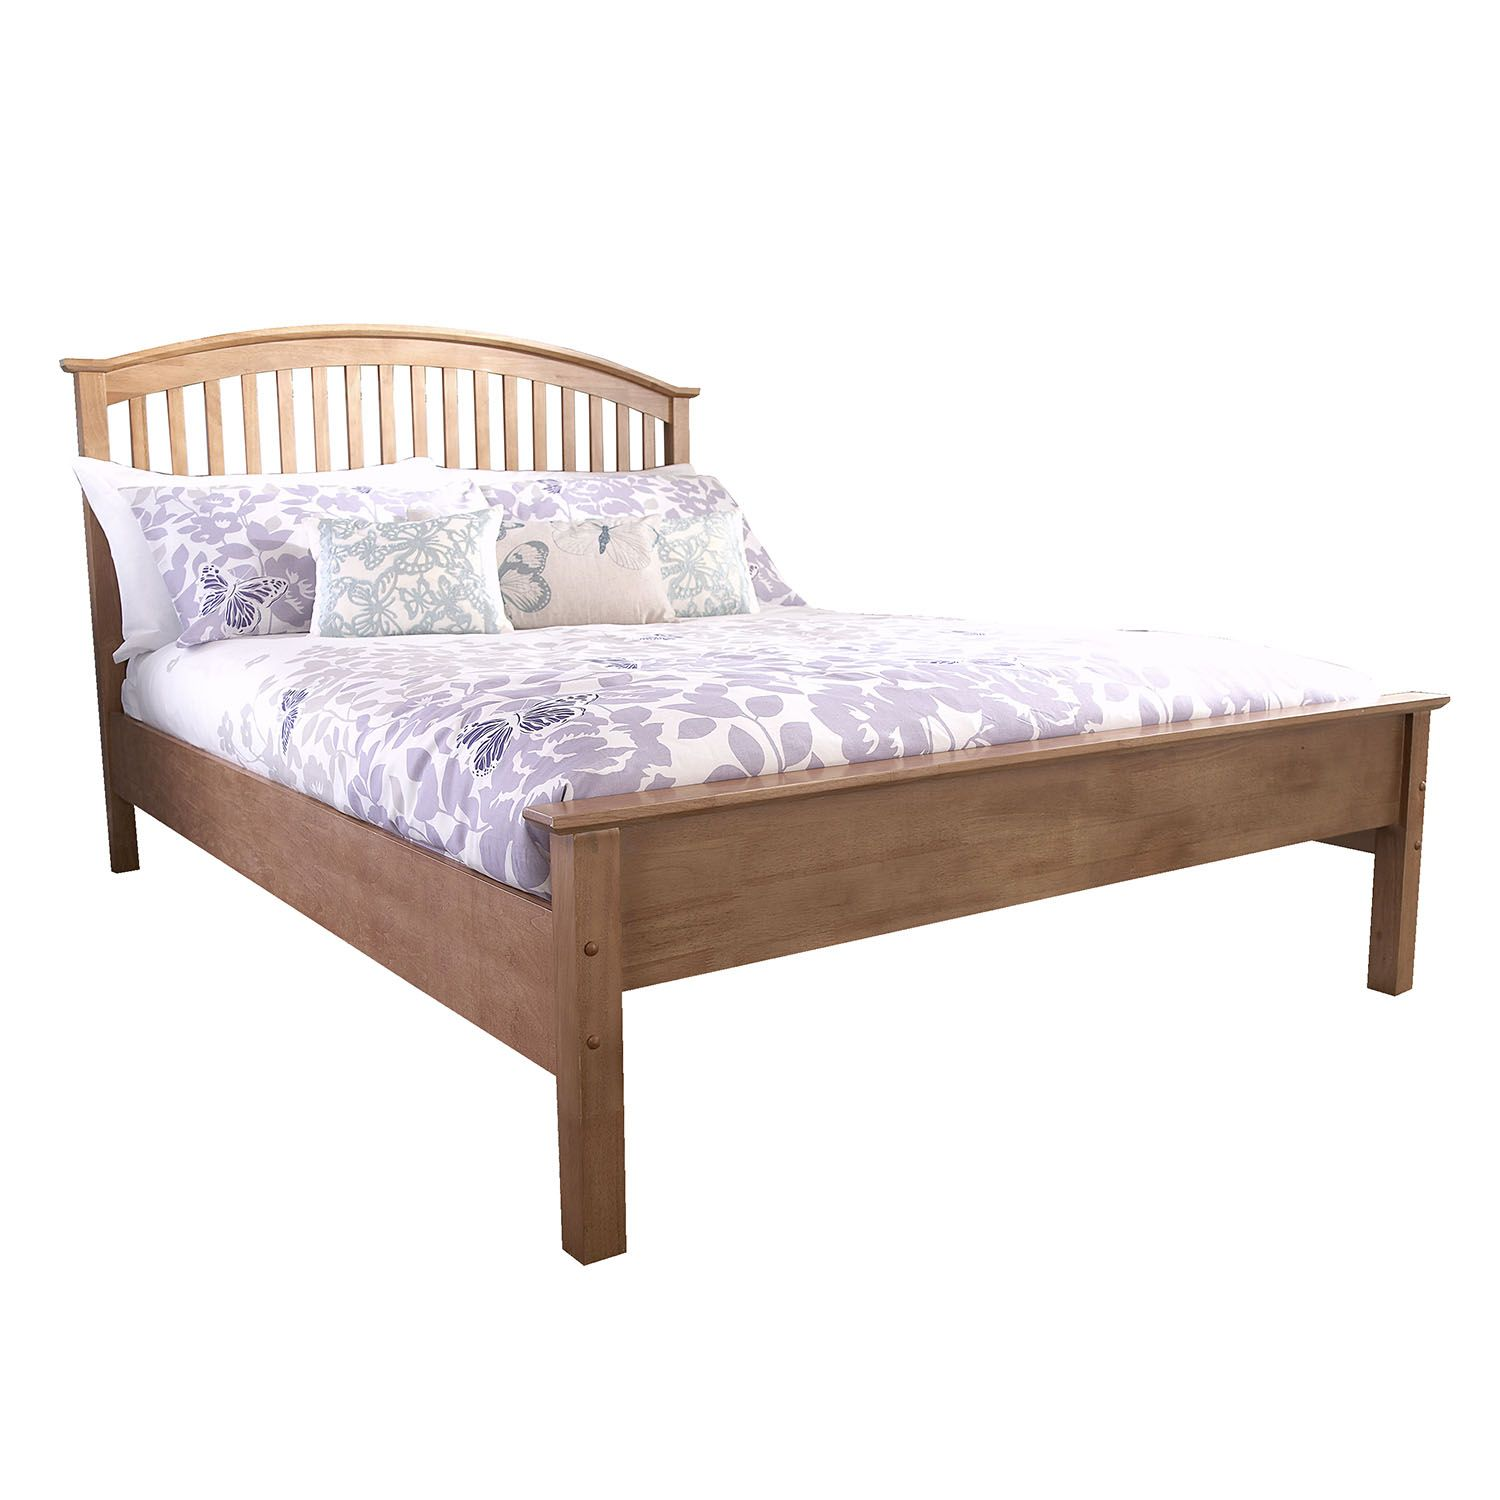 leather beds retro beds sleigh beds kids beds TV